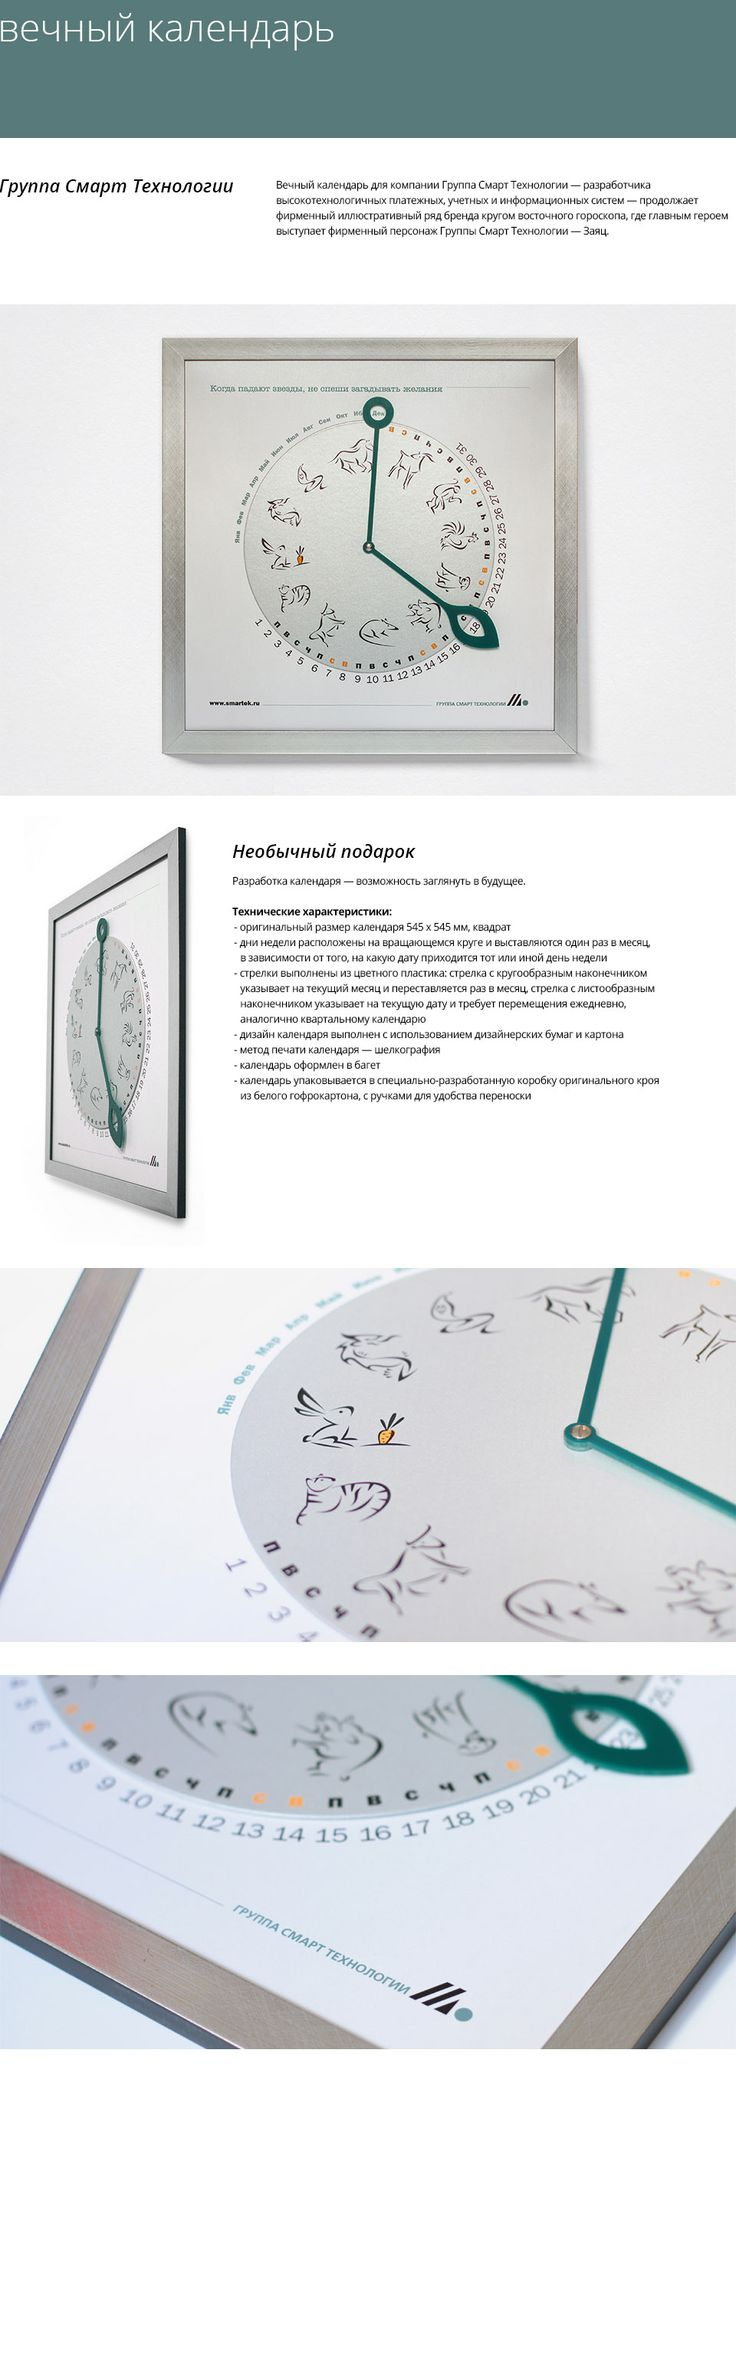 Perpetual calendar for company Smart Technologies Group WORK: creative concept / design and layout / illustration INDUSTRY: corporate management system, automation systems, control and accounting